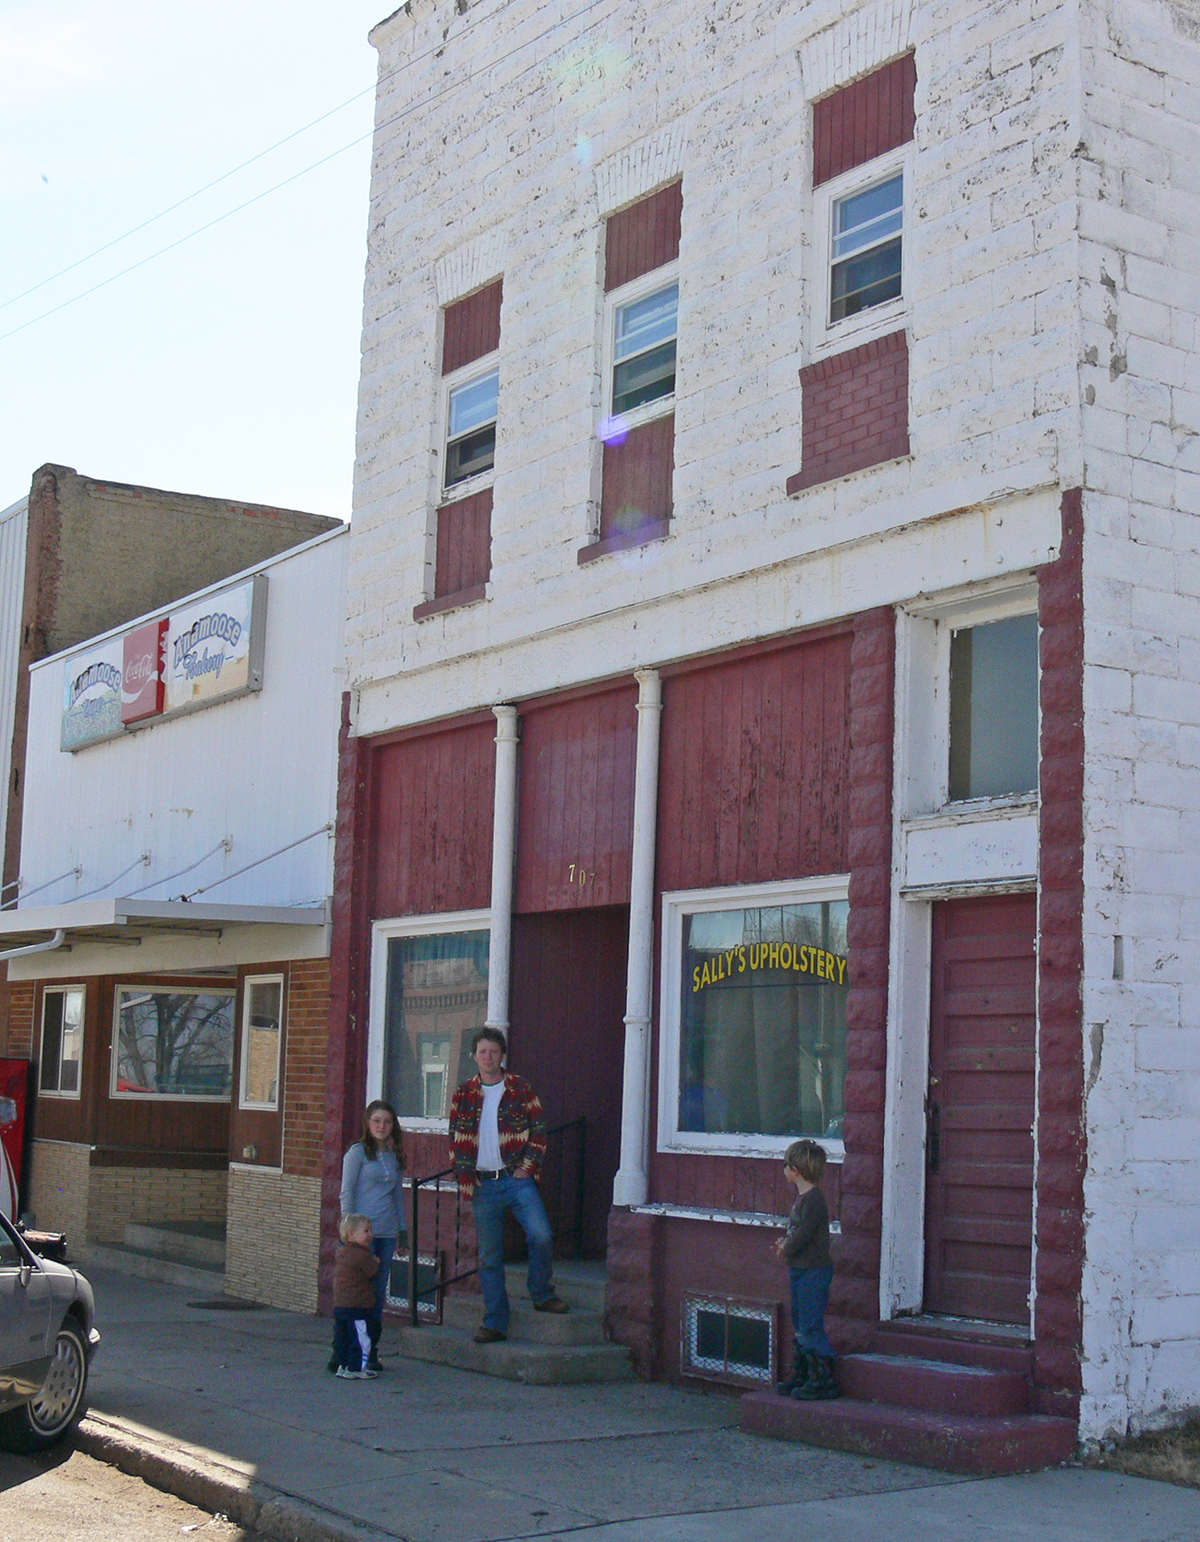 The Petrovic family purchased this building and plans to turn it into a food processing facility. Contributed photo